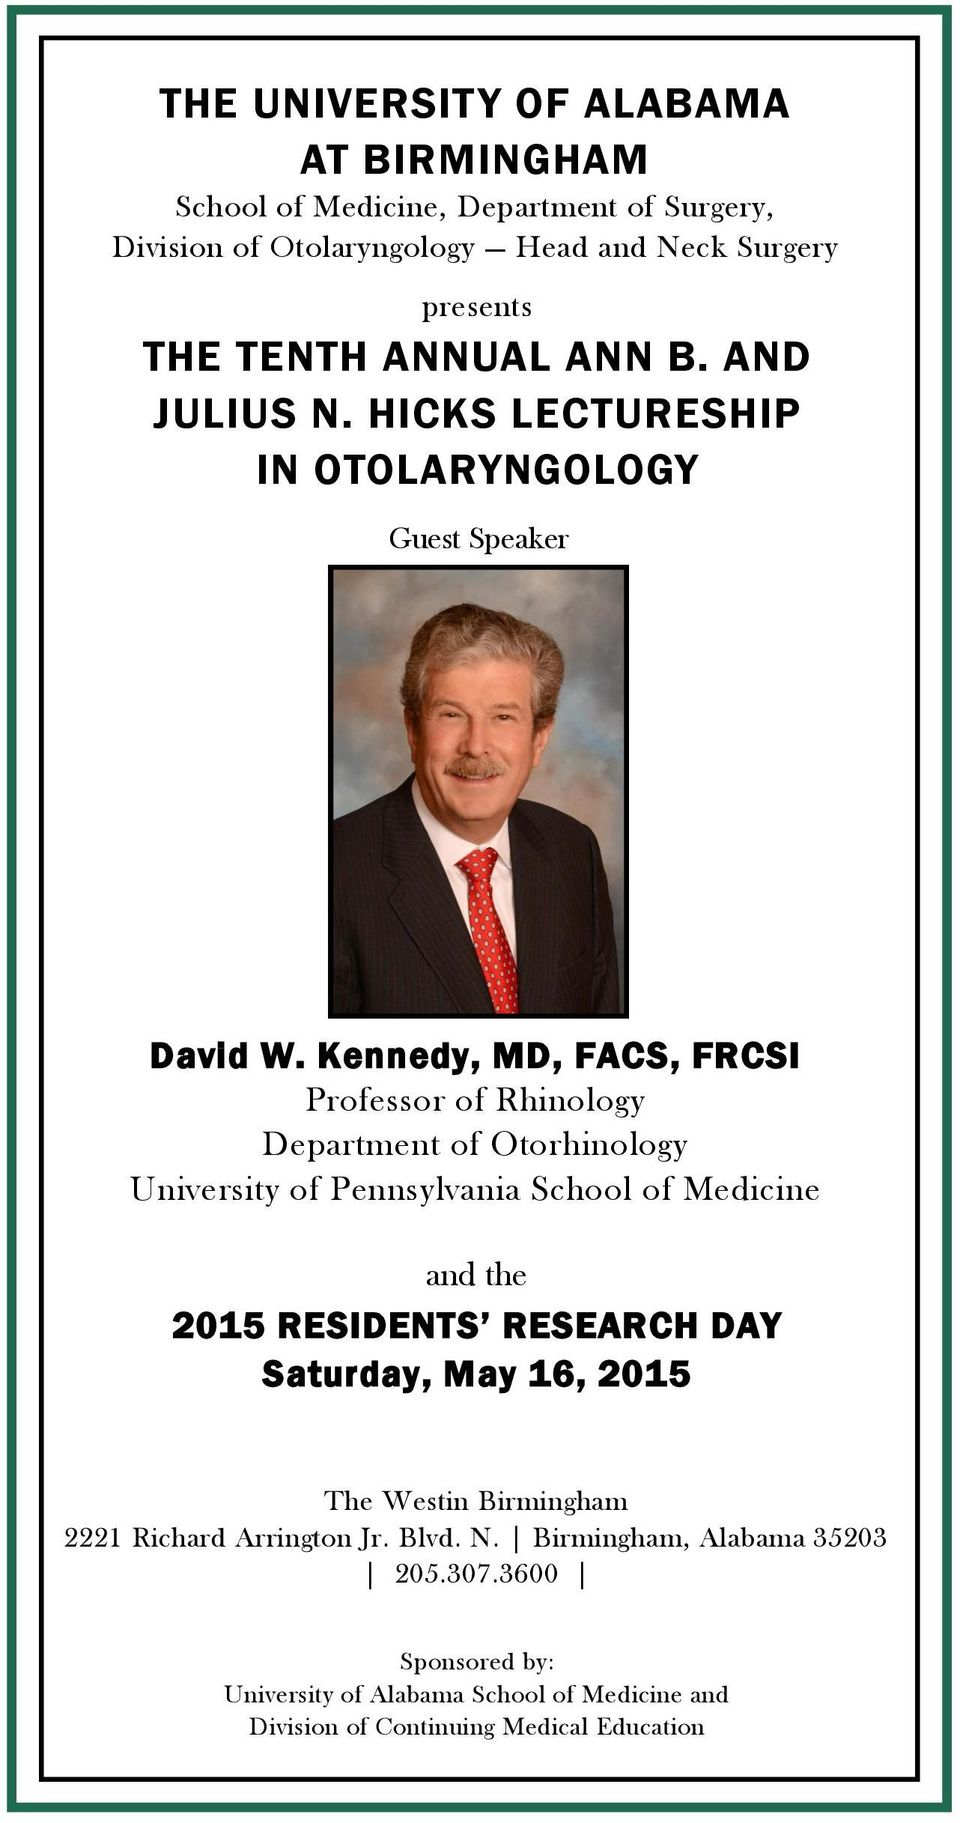 Kennedy, MD, FACS, FRCSI Professor of Rhinology Department of Otorhinology University of Pennsylvania School of Medicine and the 2015 RESIDENTS RESEARCH